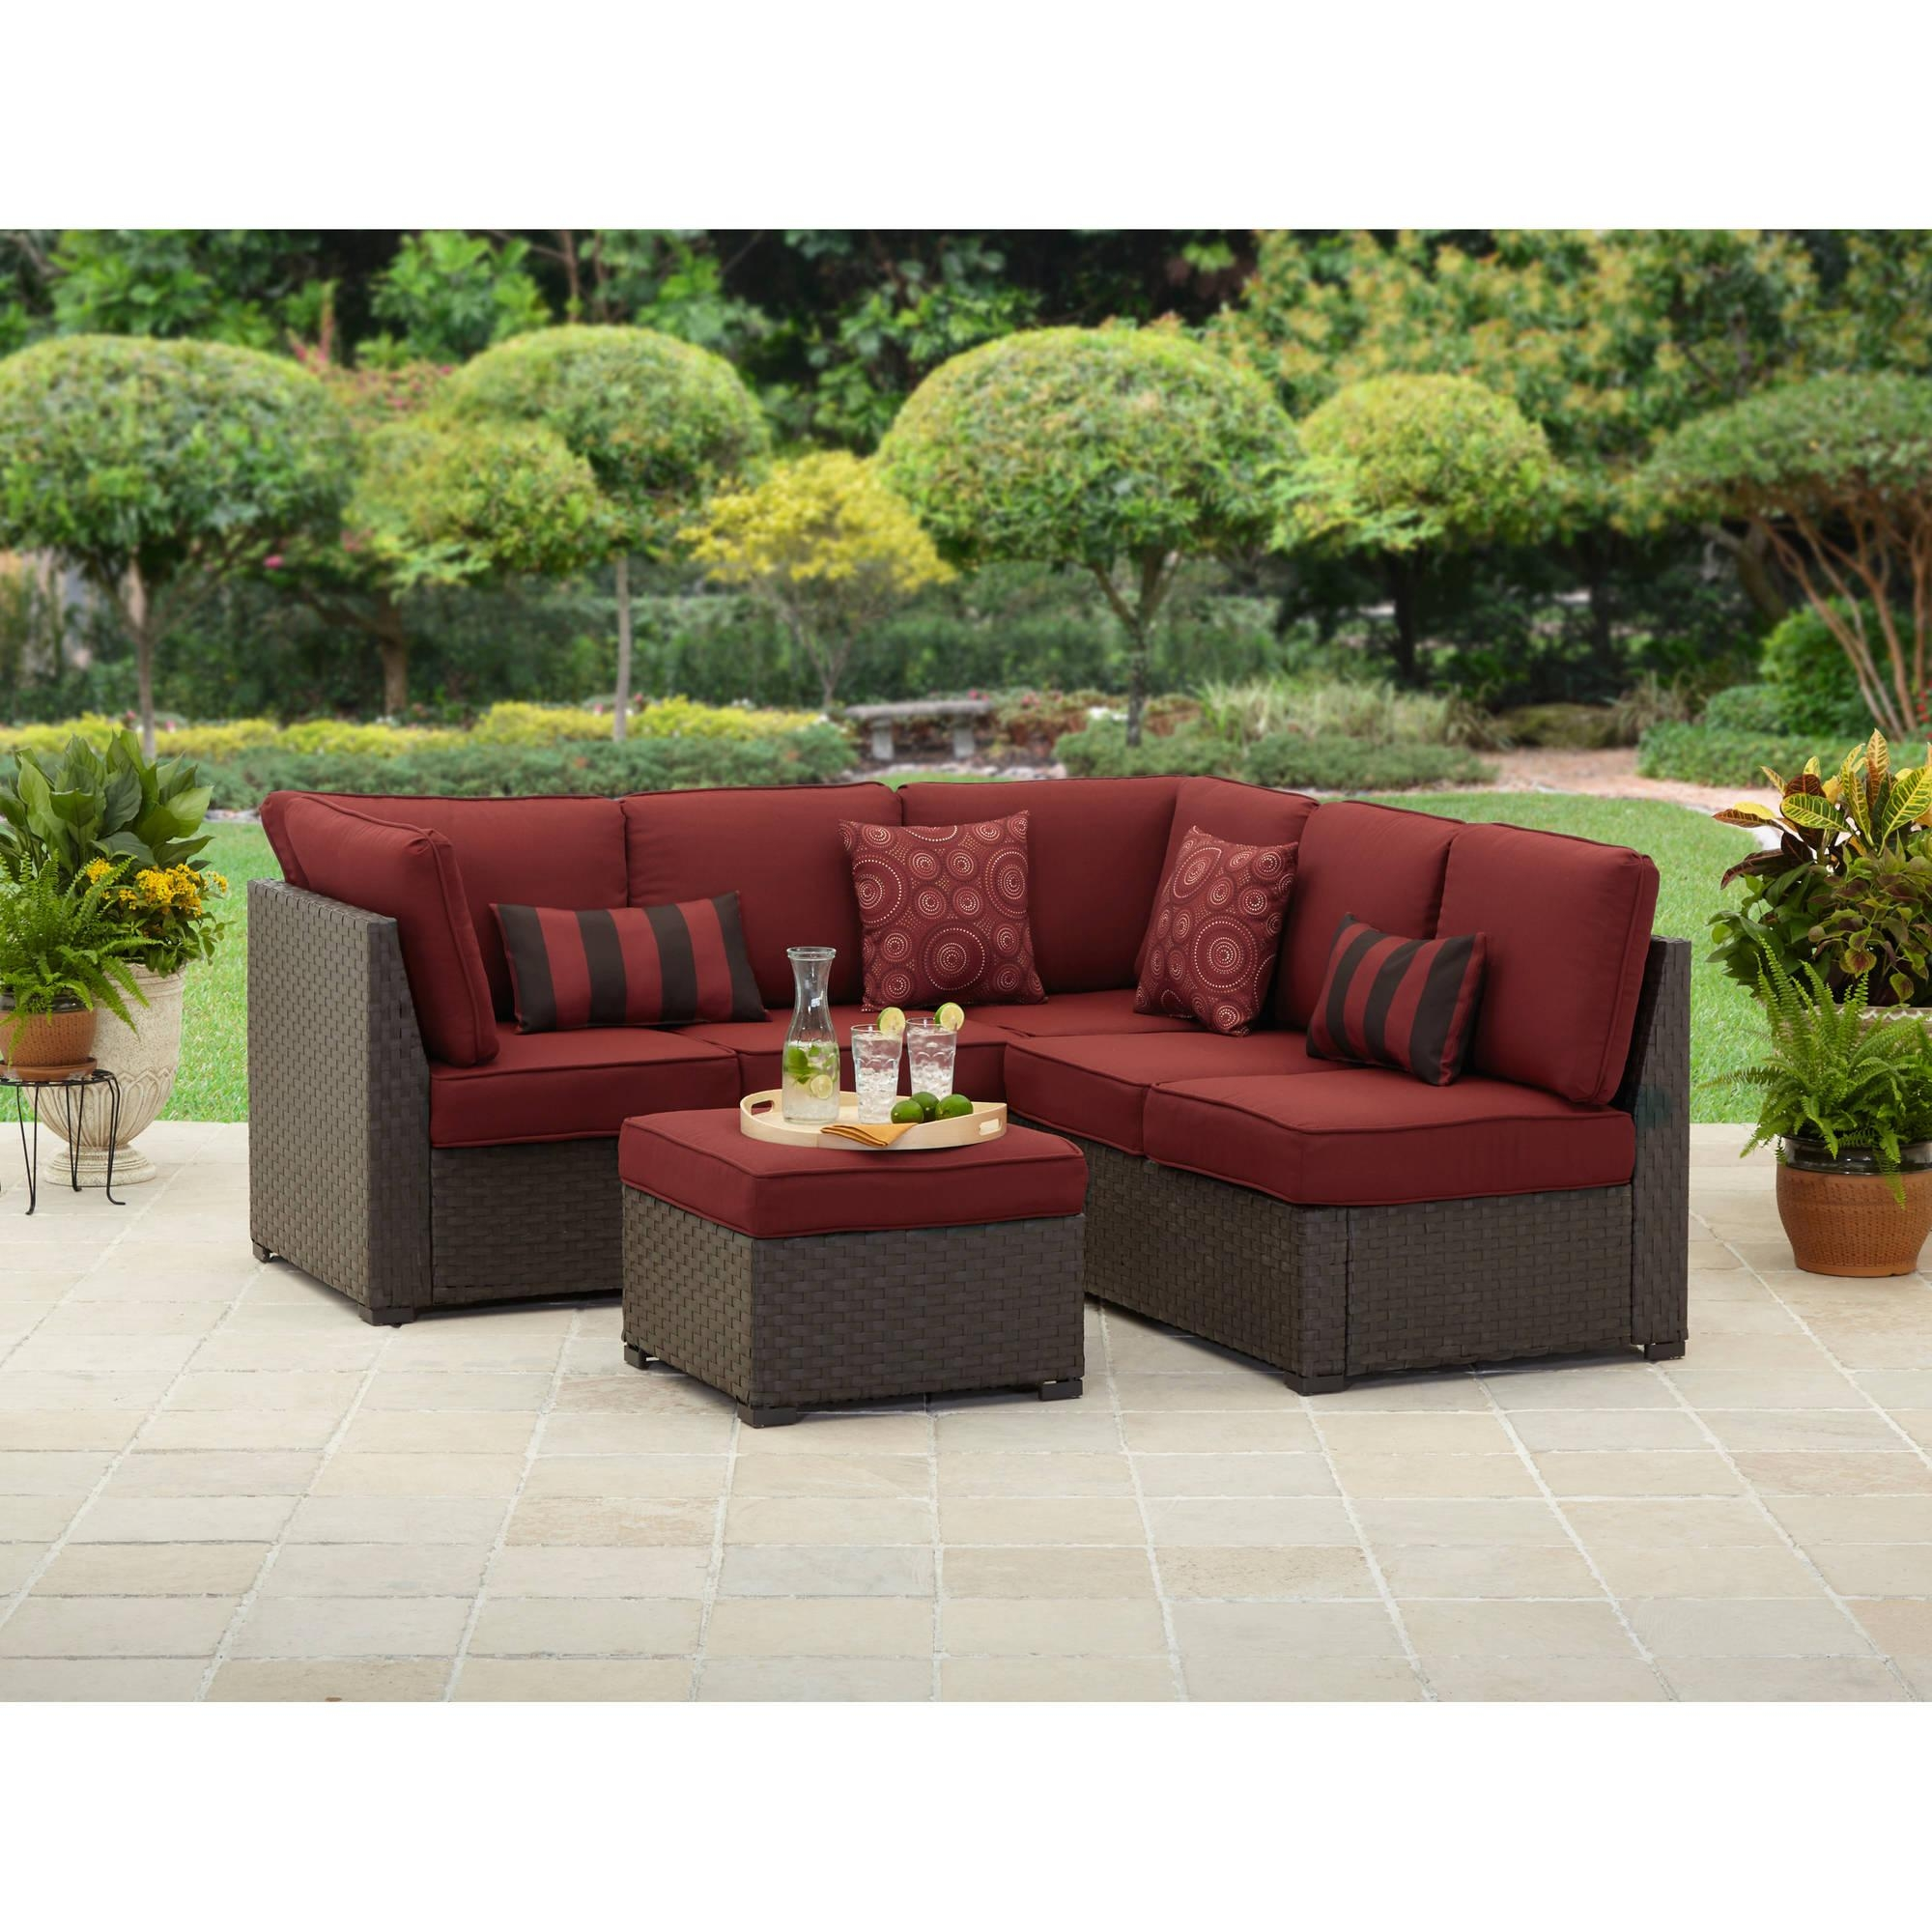 Better Homes And Gardens Rush Valley 3 Piece Outdoor Sectional Inside Cheap Outdoor Sectionals (Image 4 of 15)